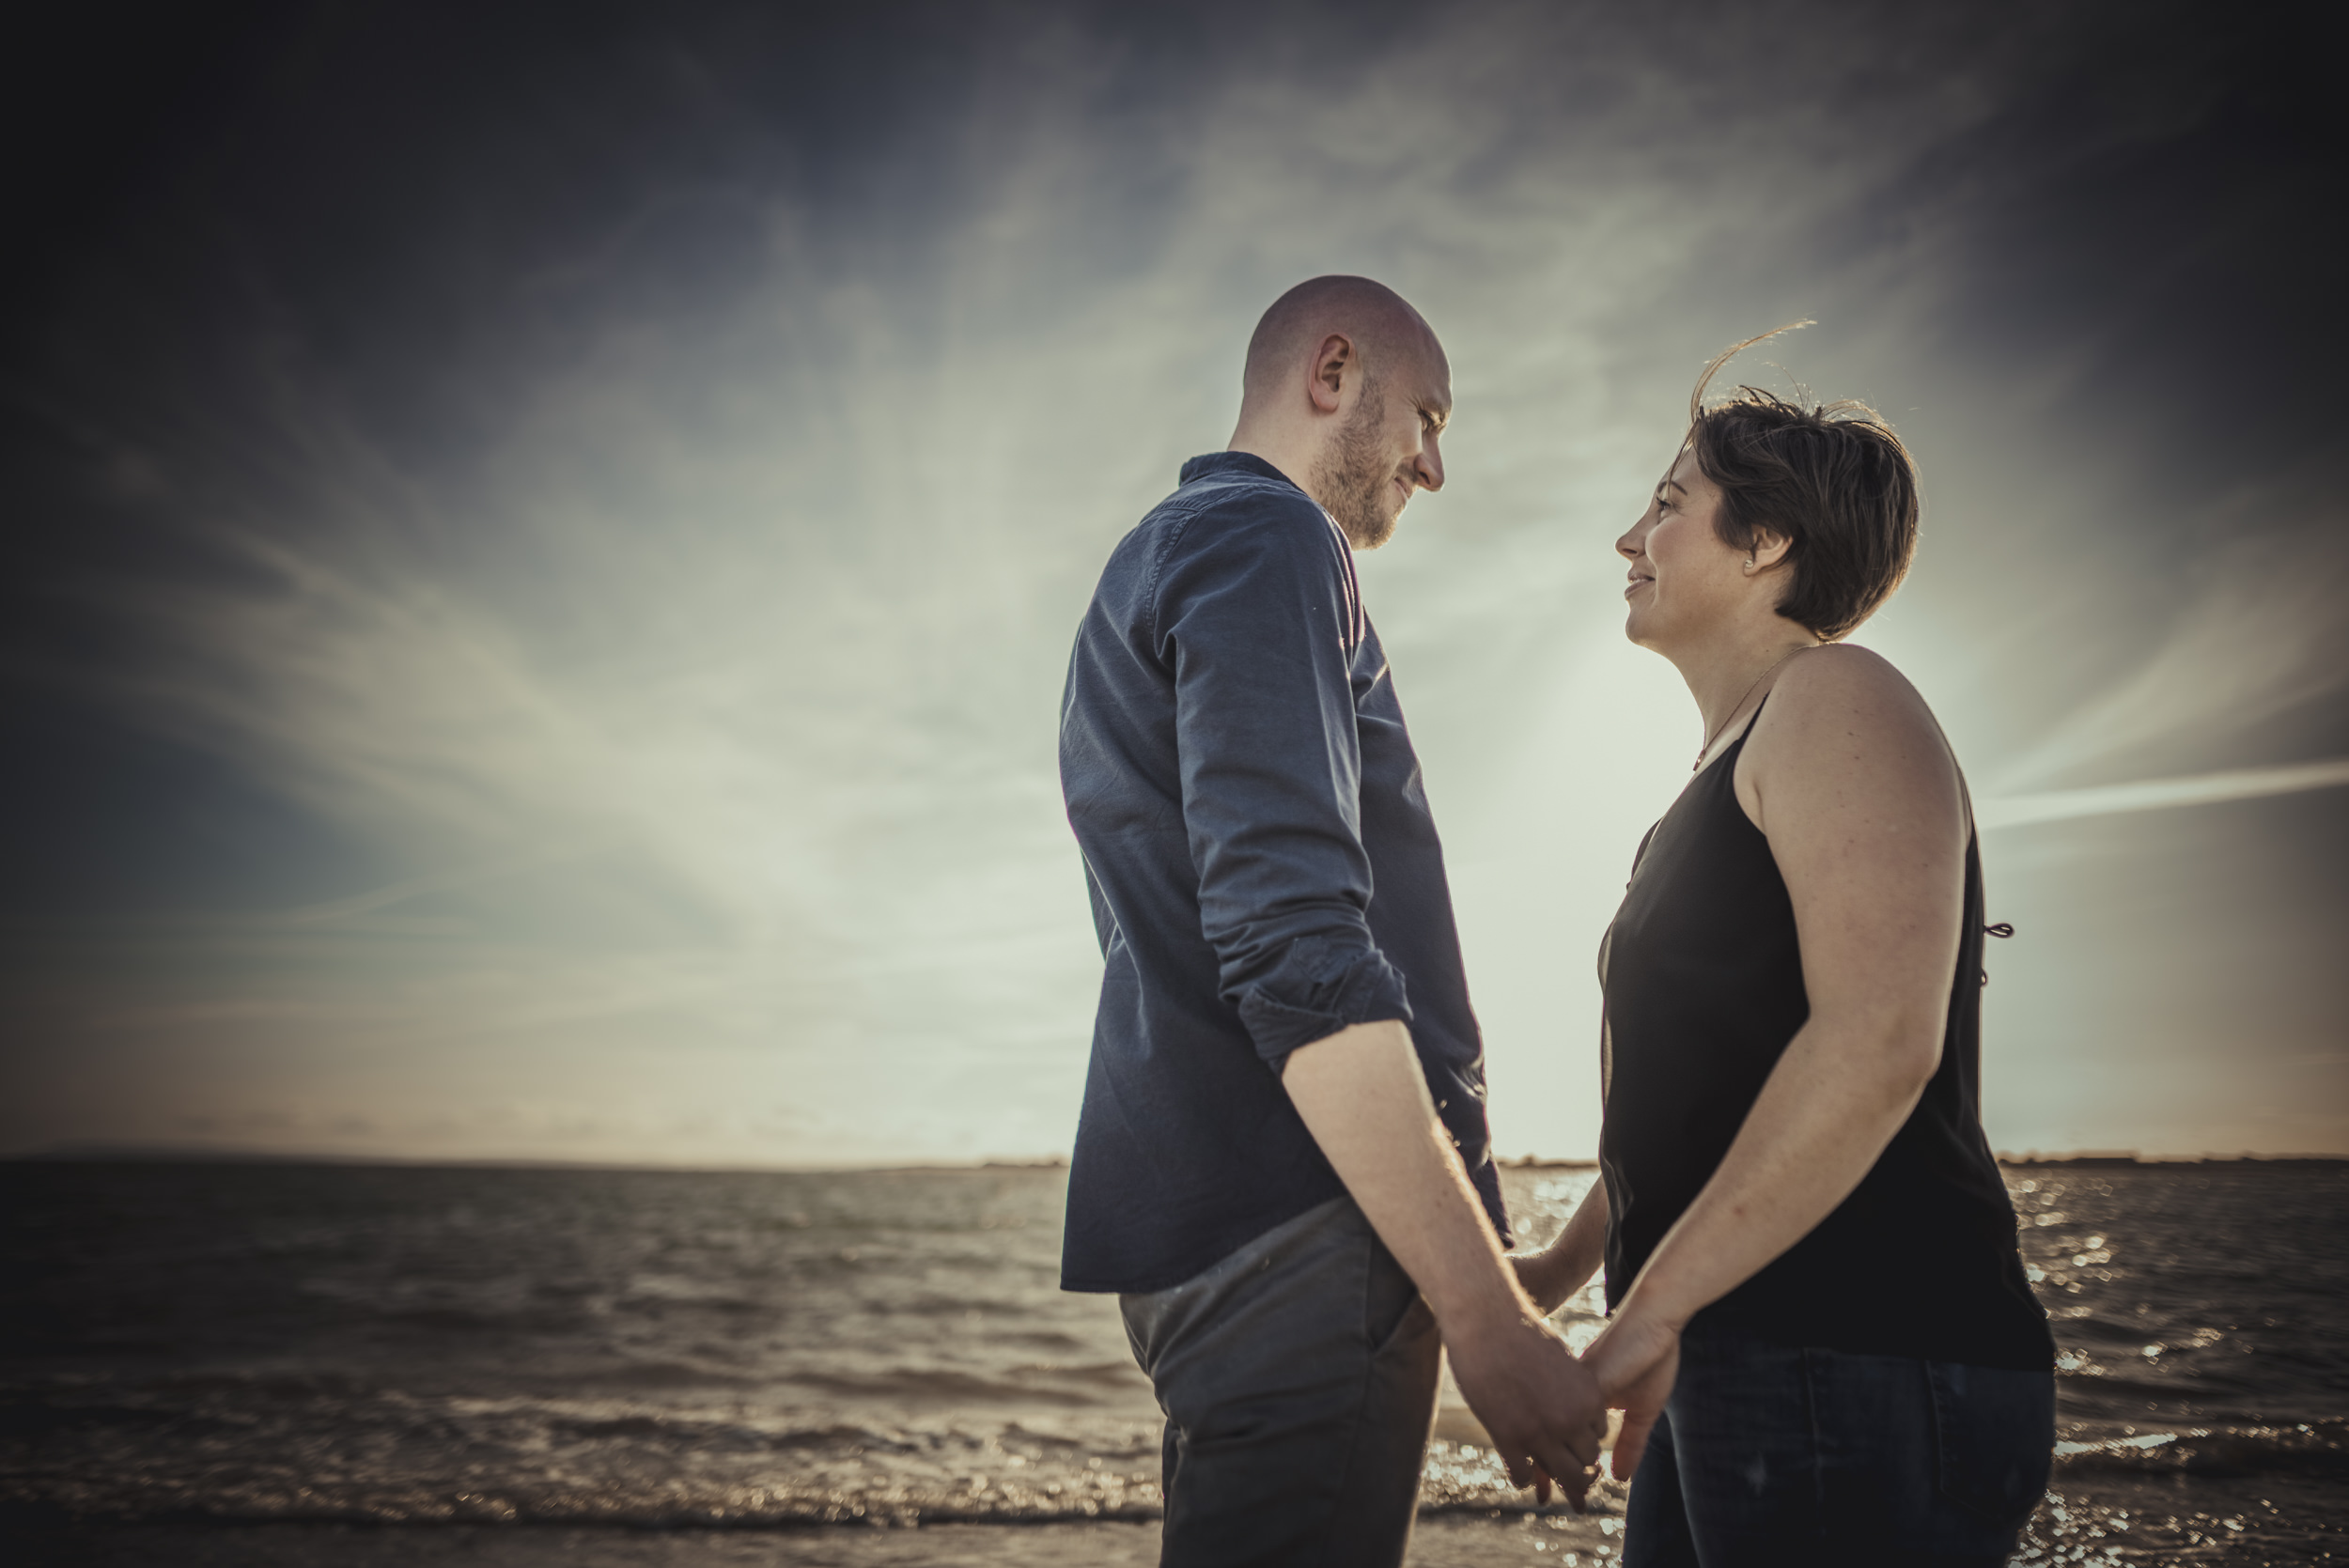 Tara-and-Simon-Engagement-Session- West-Wittering-Beach-West-Sussex-Manu-Mendoza-Wedding-Photography-003.jpg